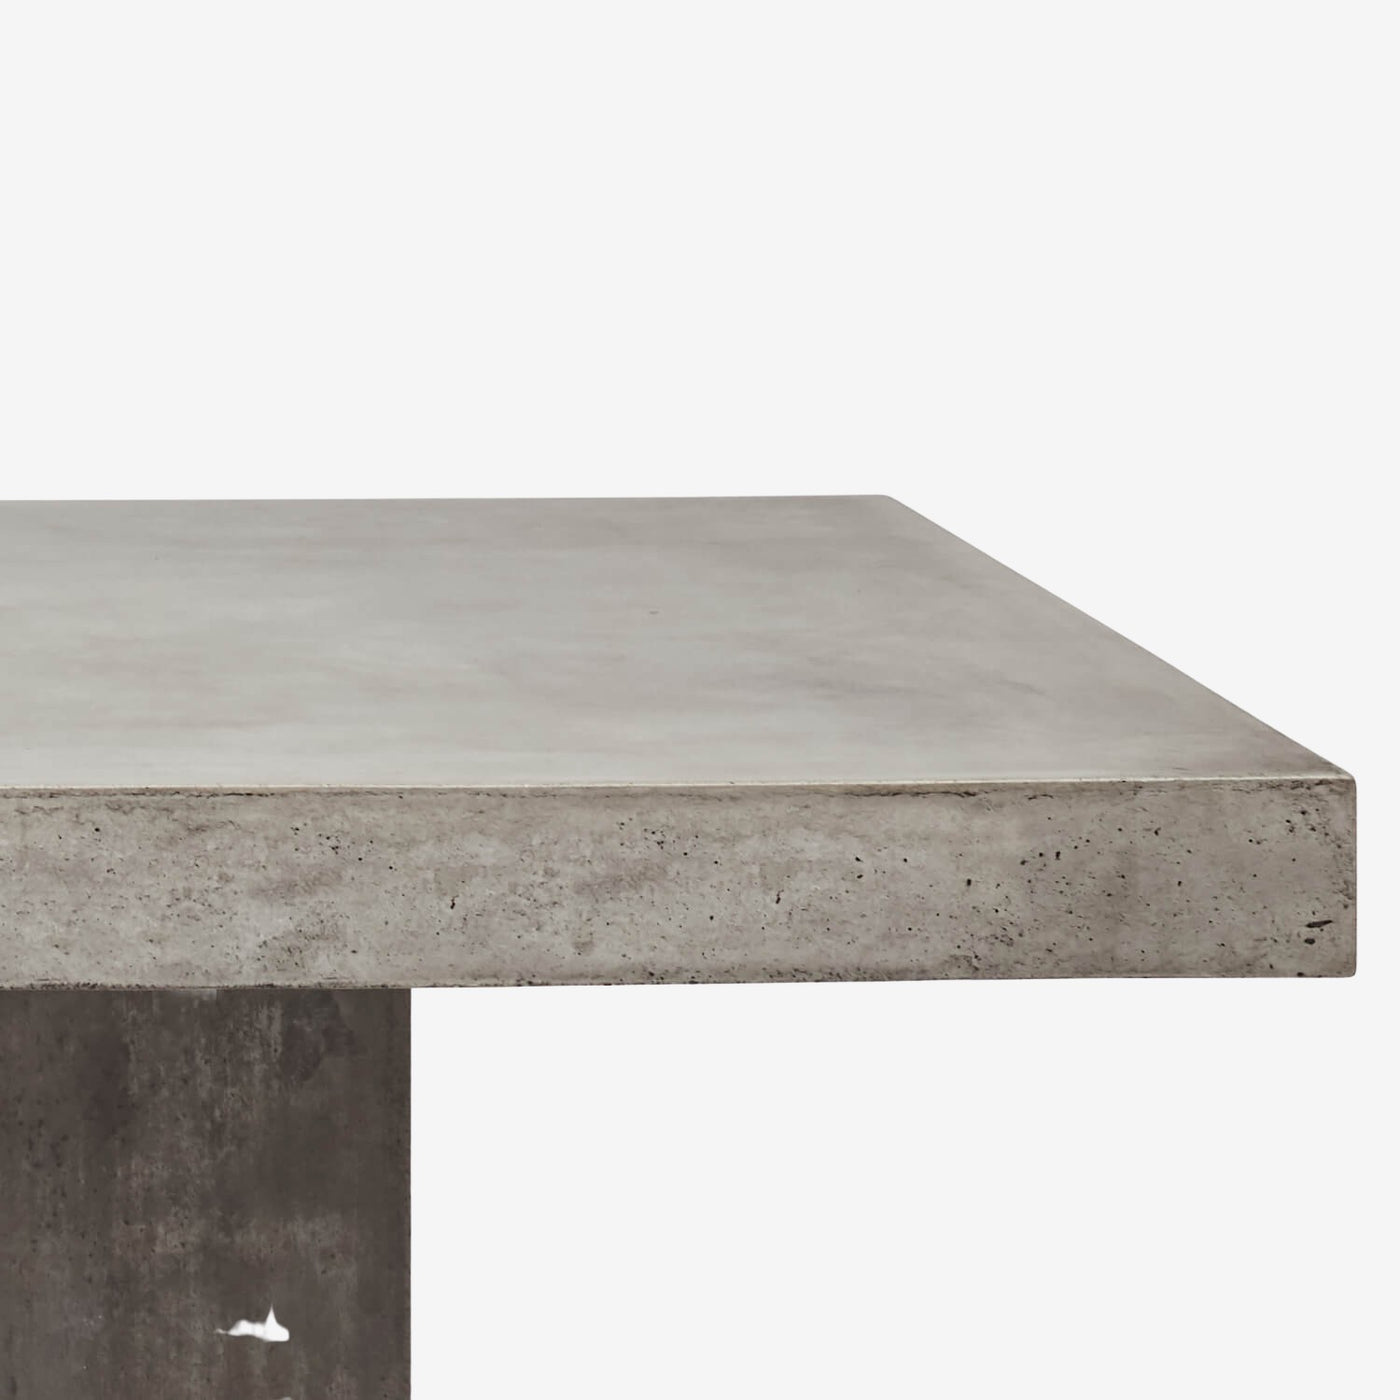 Monolithic Rectangle Cement Table